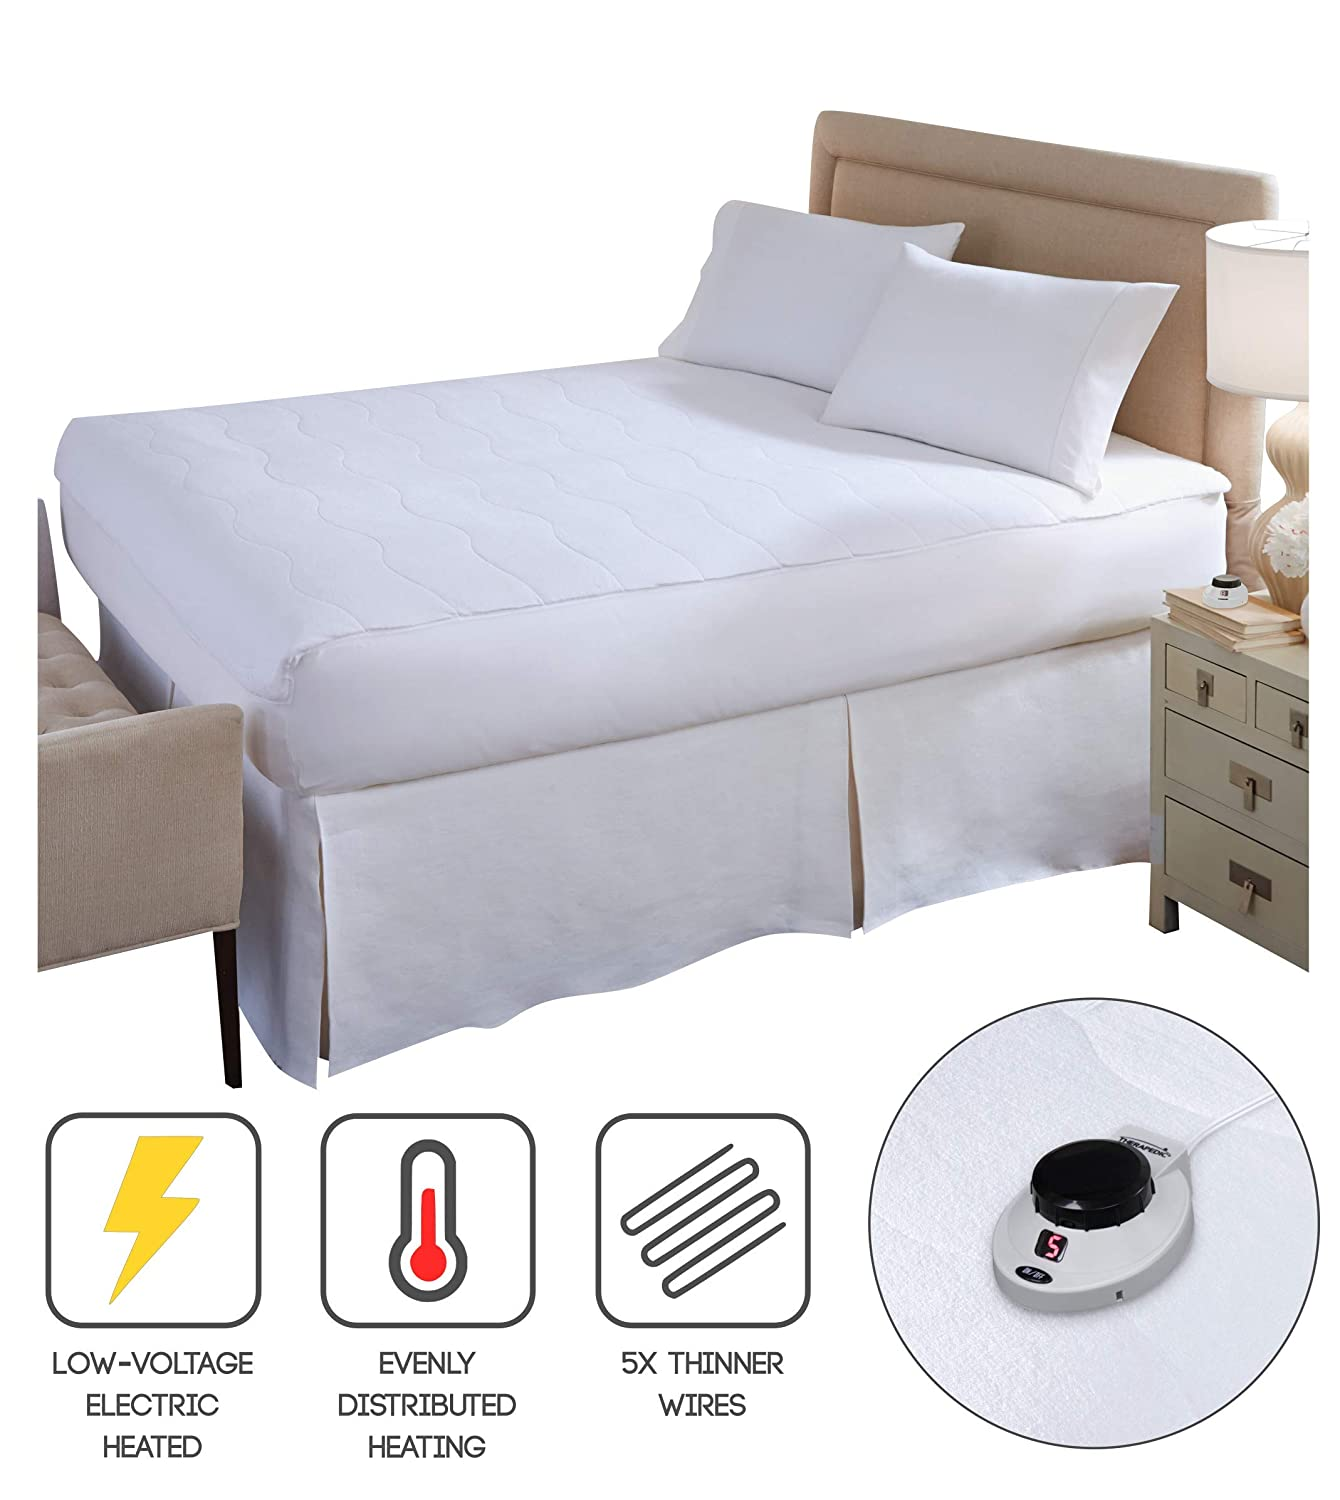 Perfect Fit SoftHeat Smart Heated Electric Mattress Pad with Safe & Warm Low Voltage Technology, Micro-Plush Top (Full)